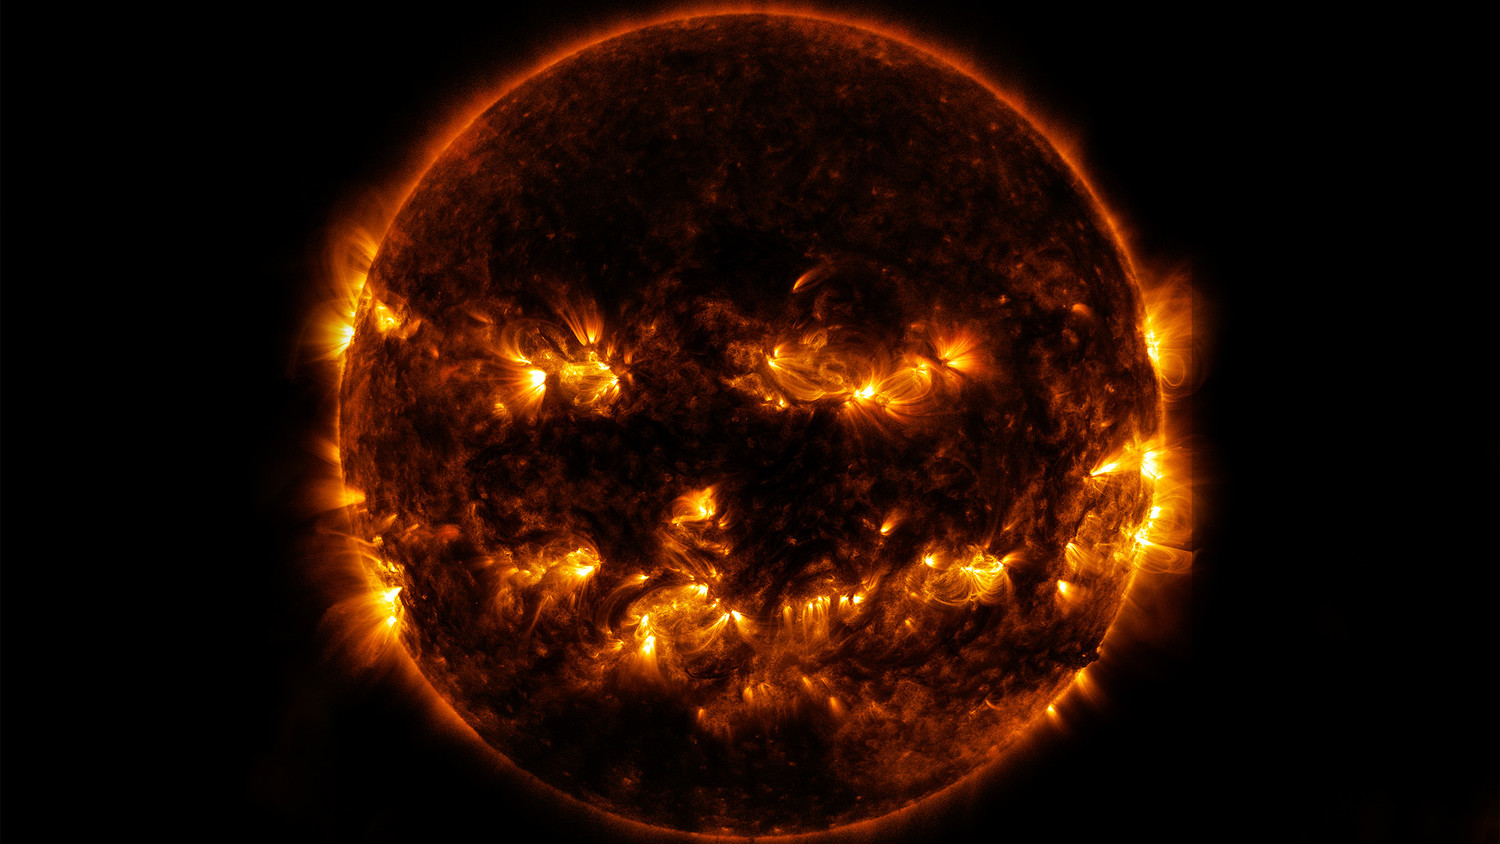 NASA Celebrates Halloween with a Spooky Photo of the Sun, Which Looks Just Like a Giant Jack-o'-Lantern